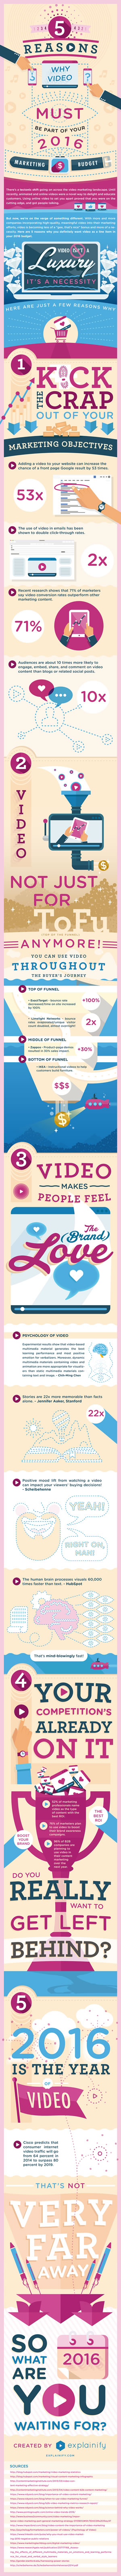 5_Reasons_Video_Must_Be_Part_of_Your_2016_Marketing_Budget_Infographic